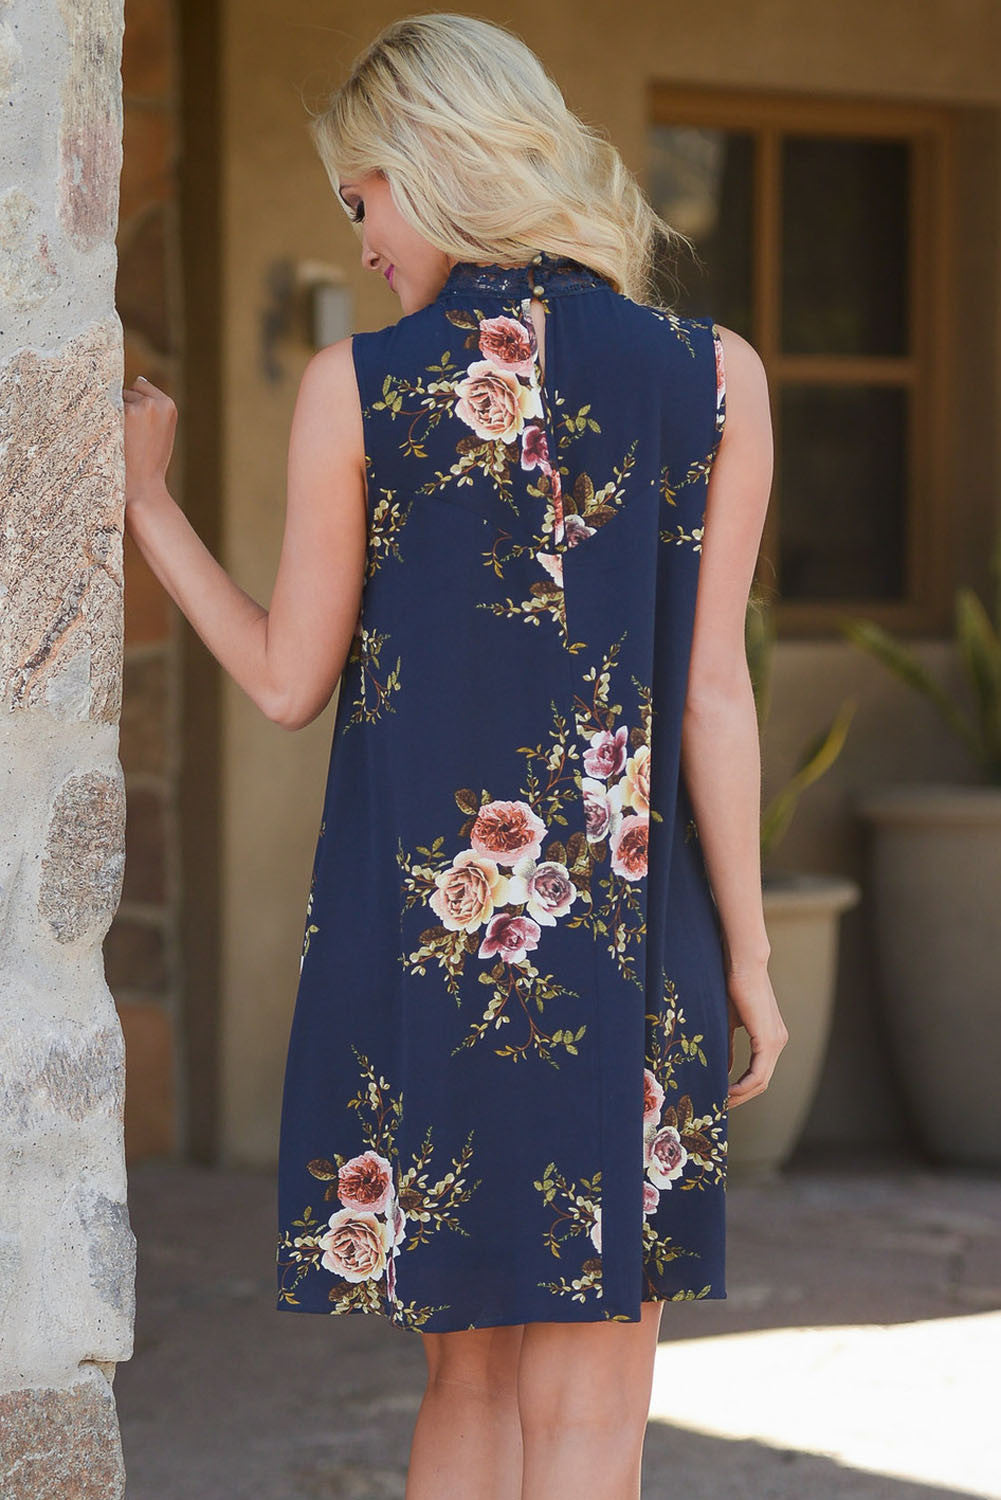 Her Fashion Classy Navy Crochet Lace Neck Floral Dress